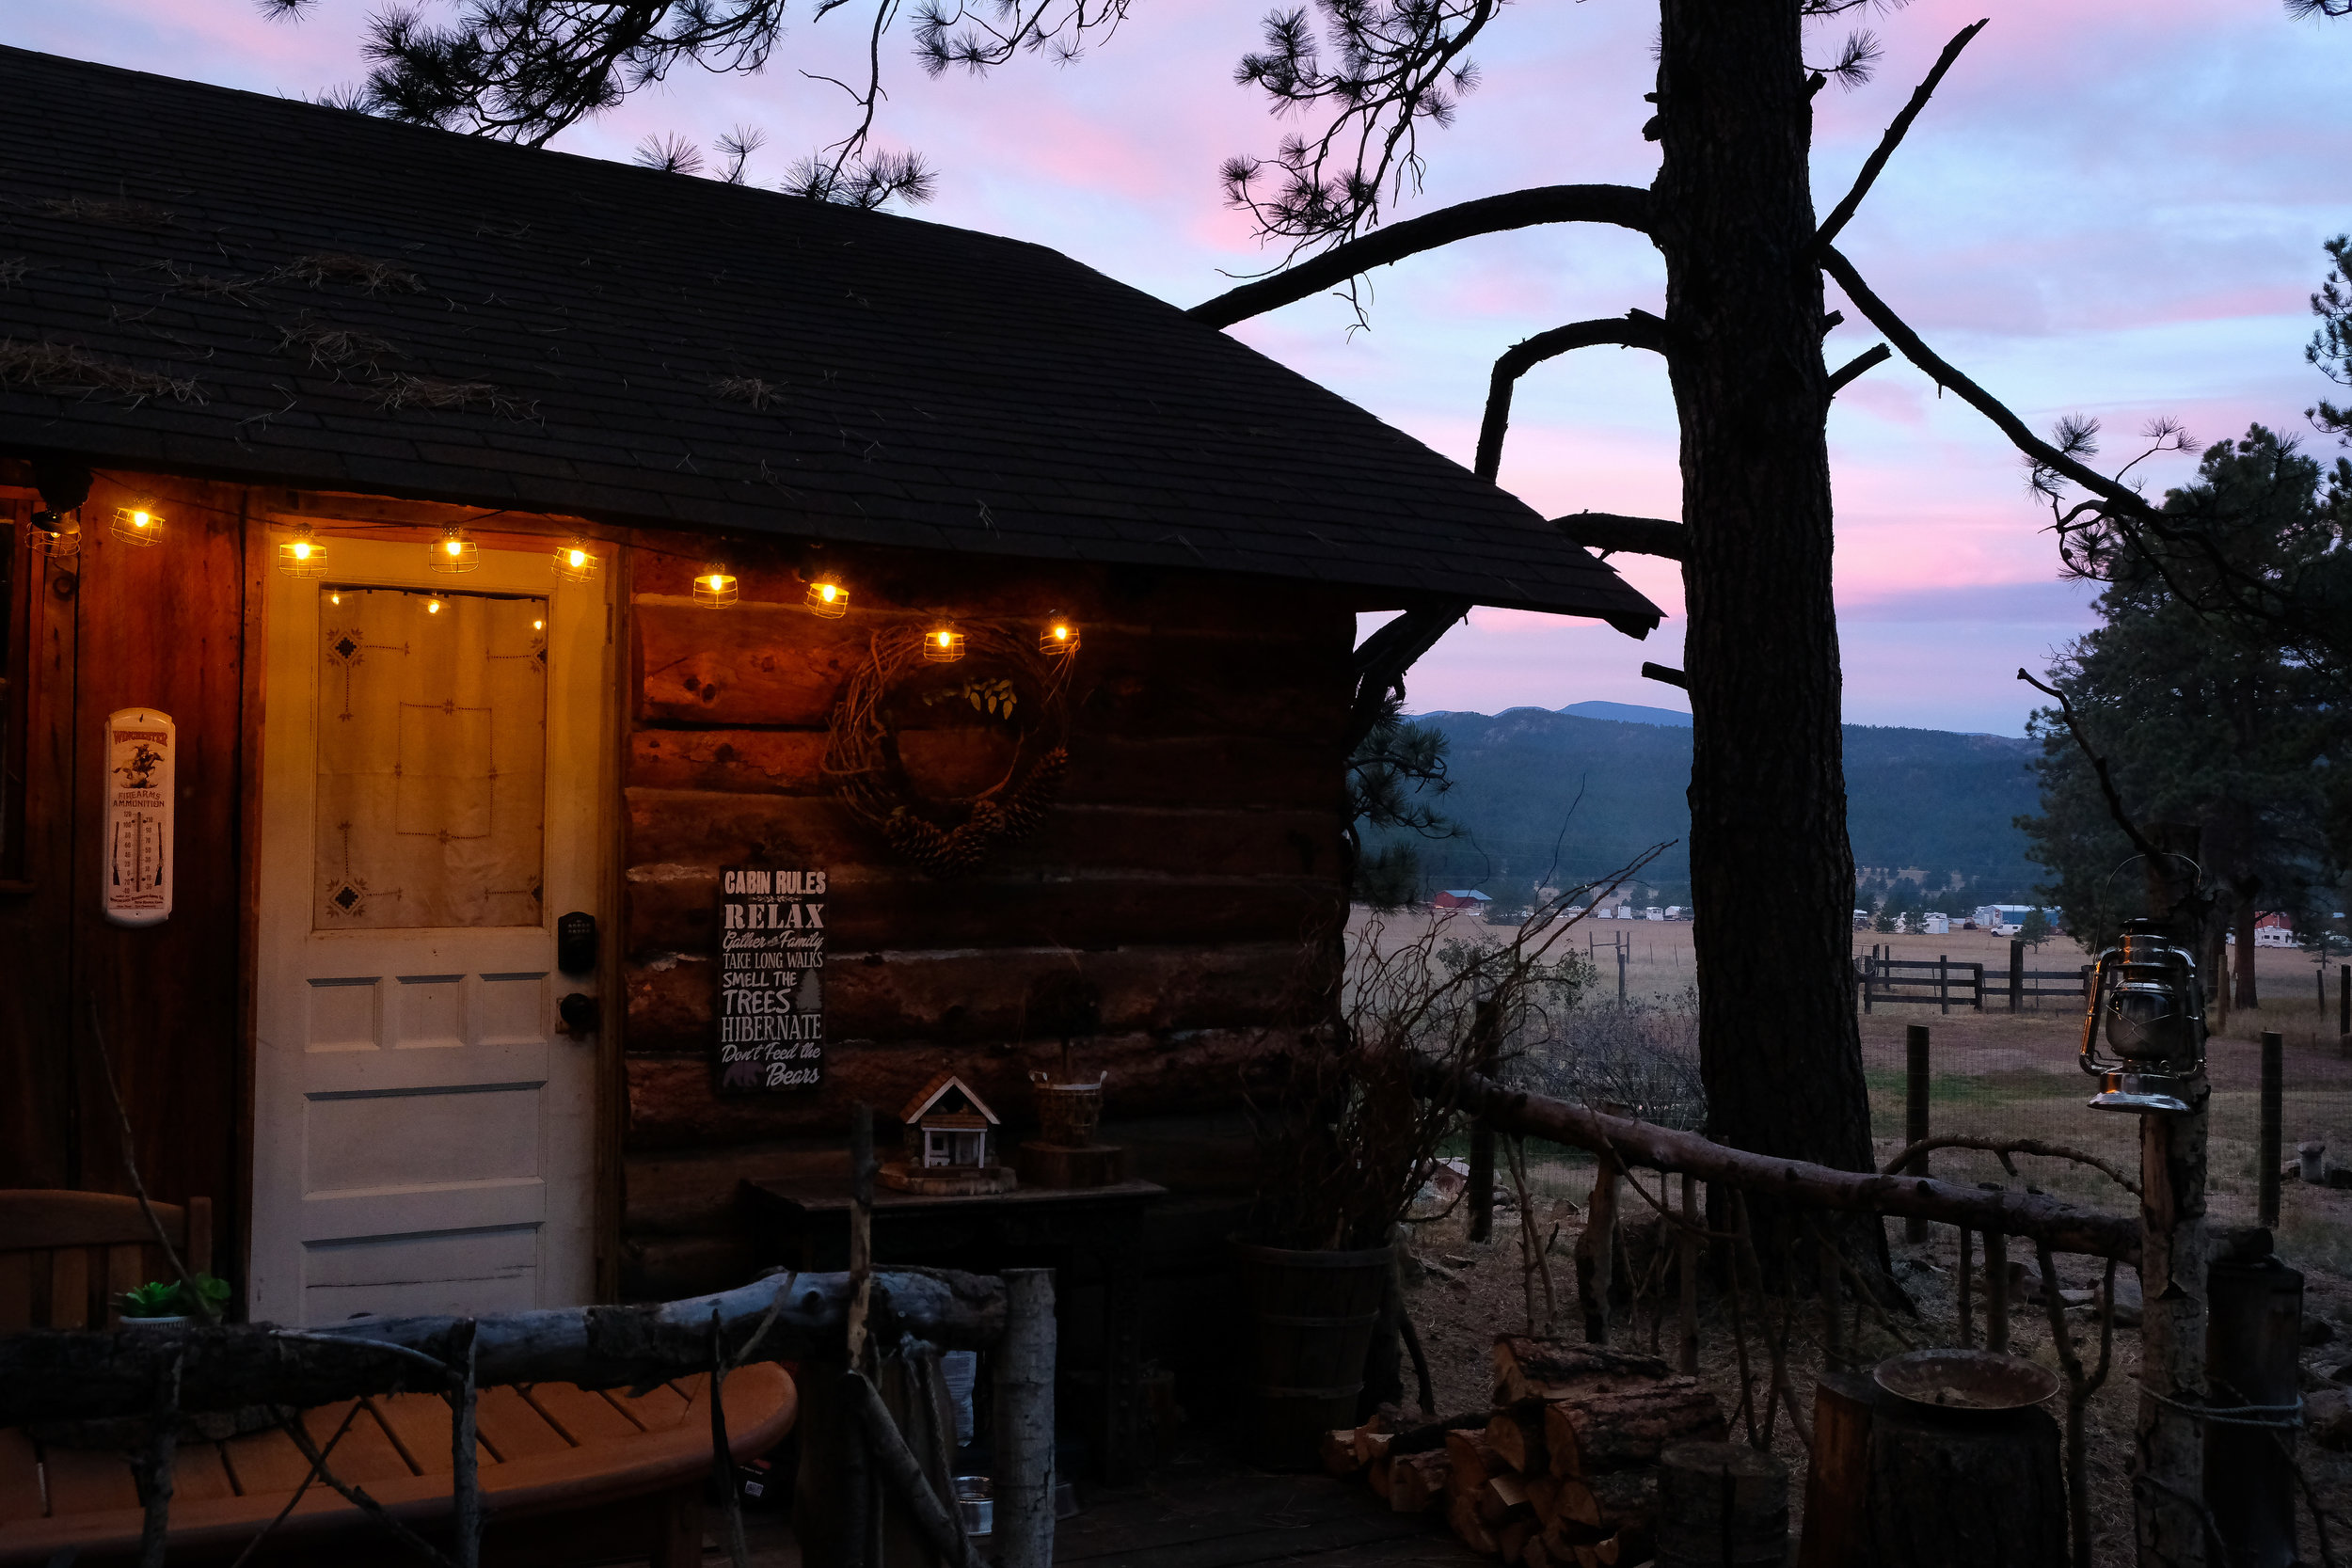 1860 Stagecoach stop - A cozy and charming cabin outside of Lake George stands as a reminder to Old Colorado living. Updated for modern comforts, the four-person outhouse still remains.